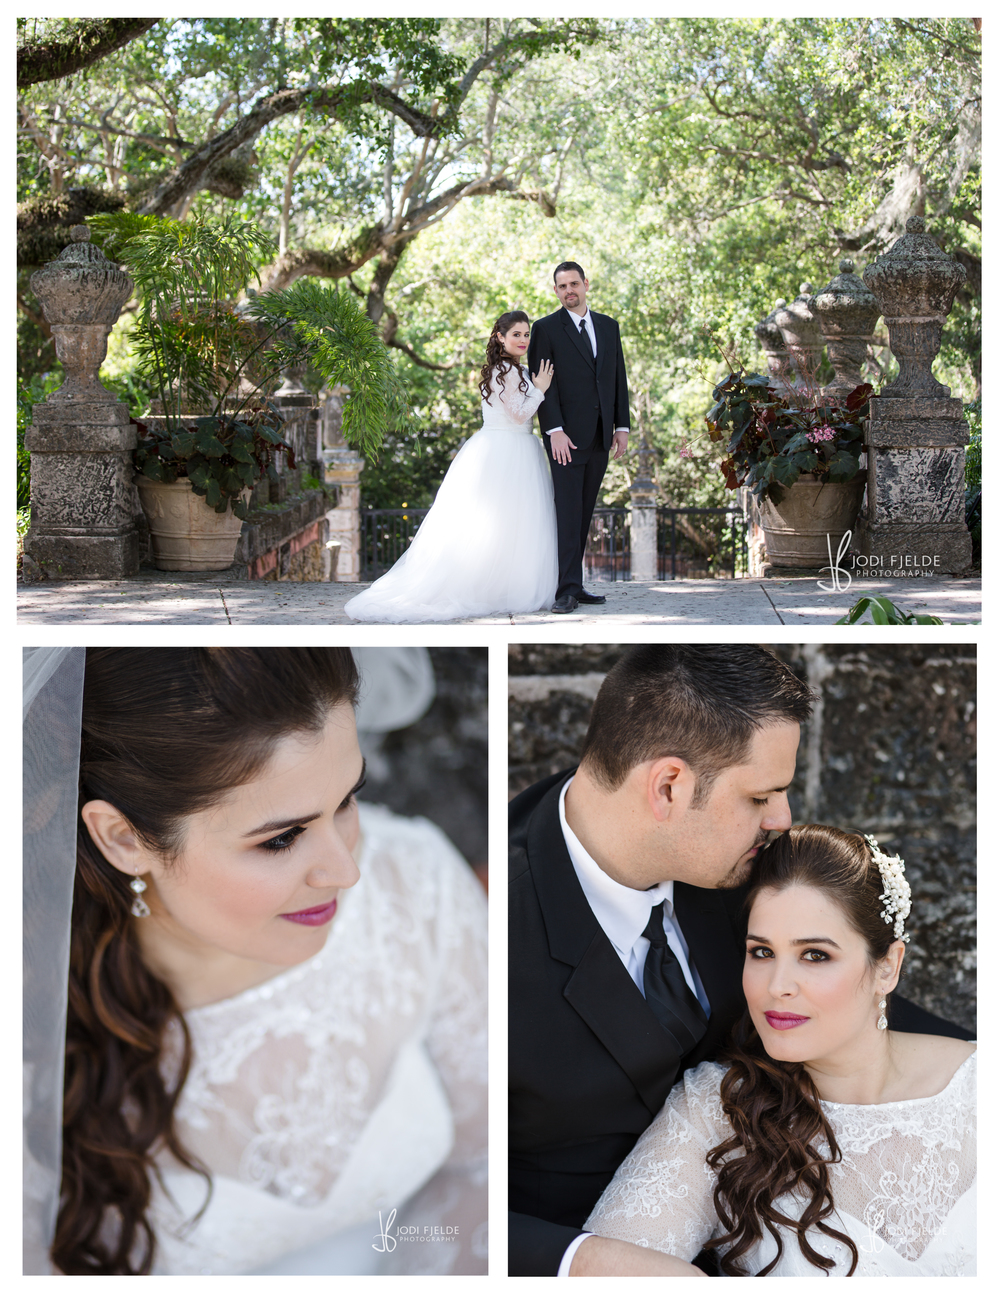 Ballroom Wedding_Ft Lauderdale_Florida_wedding_Maria_&_Juan_photography_jodi_Fjelde_photography-14.jpg